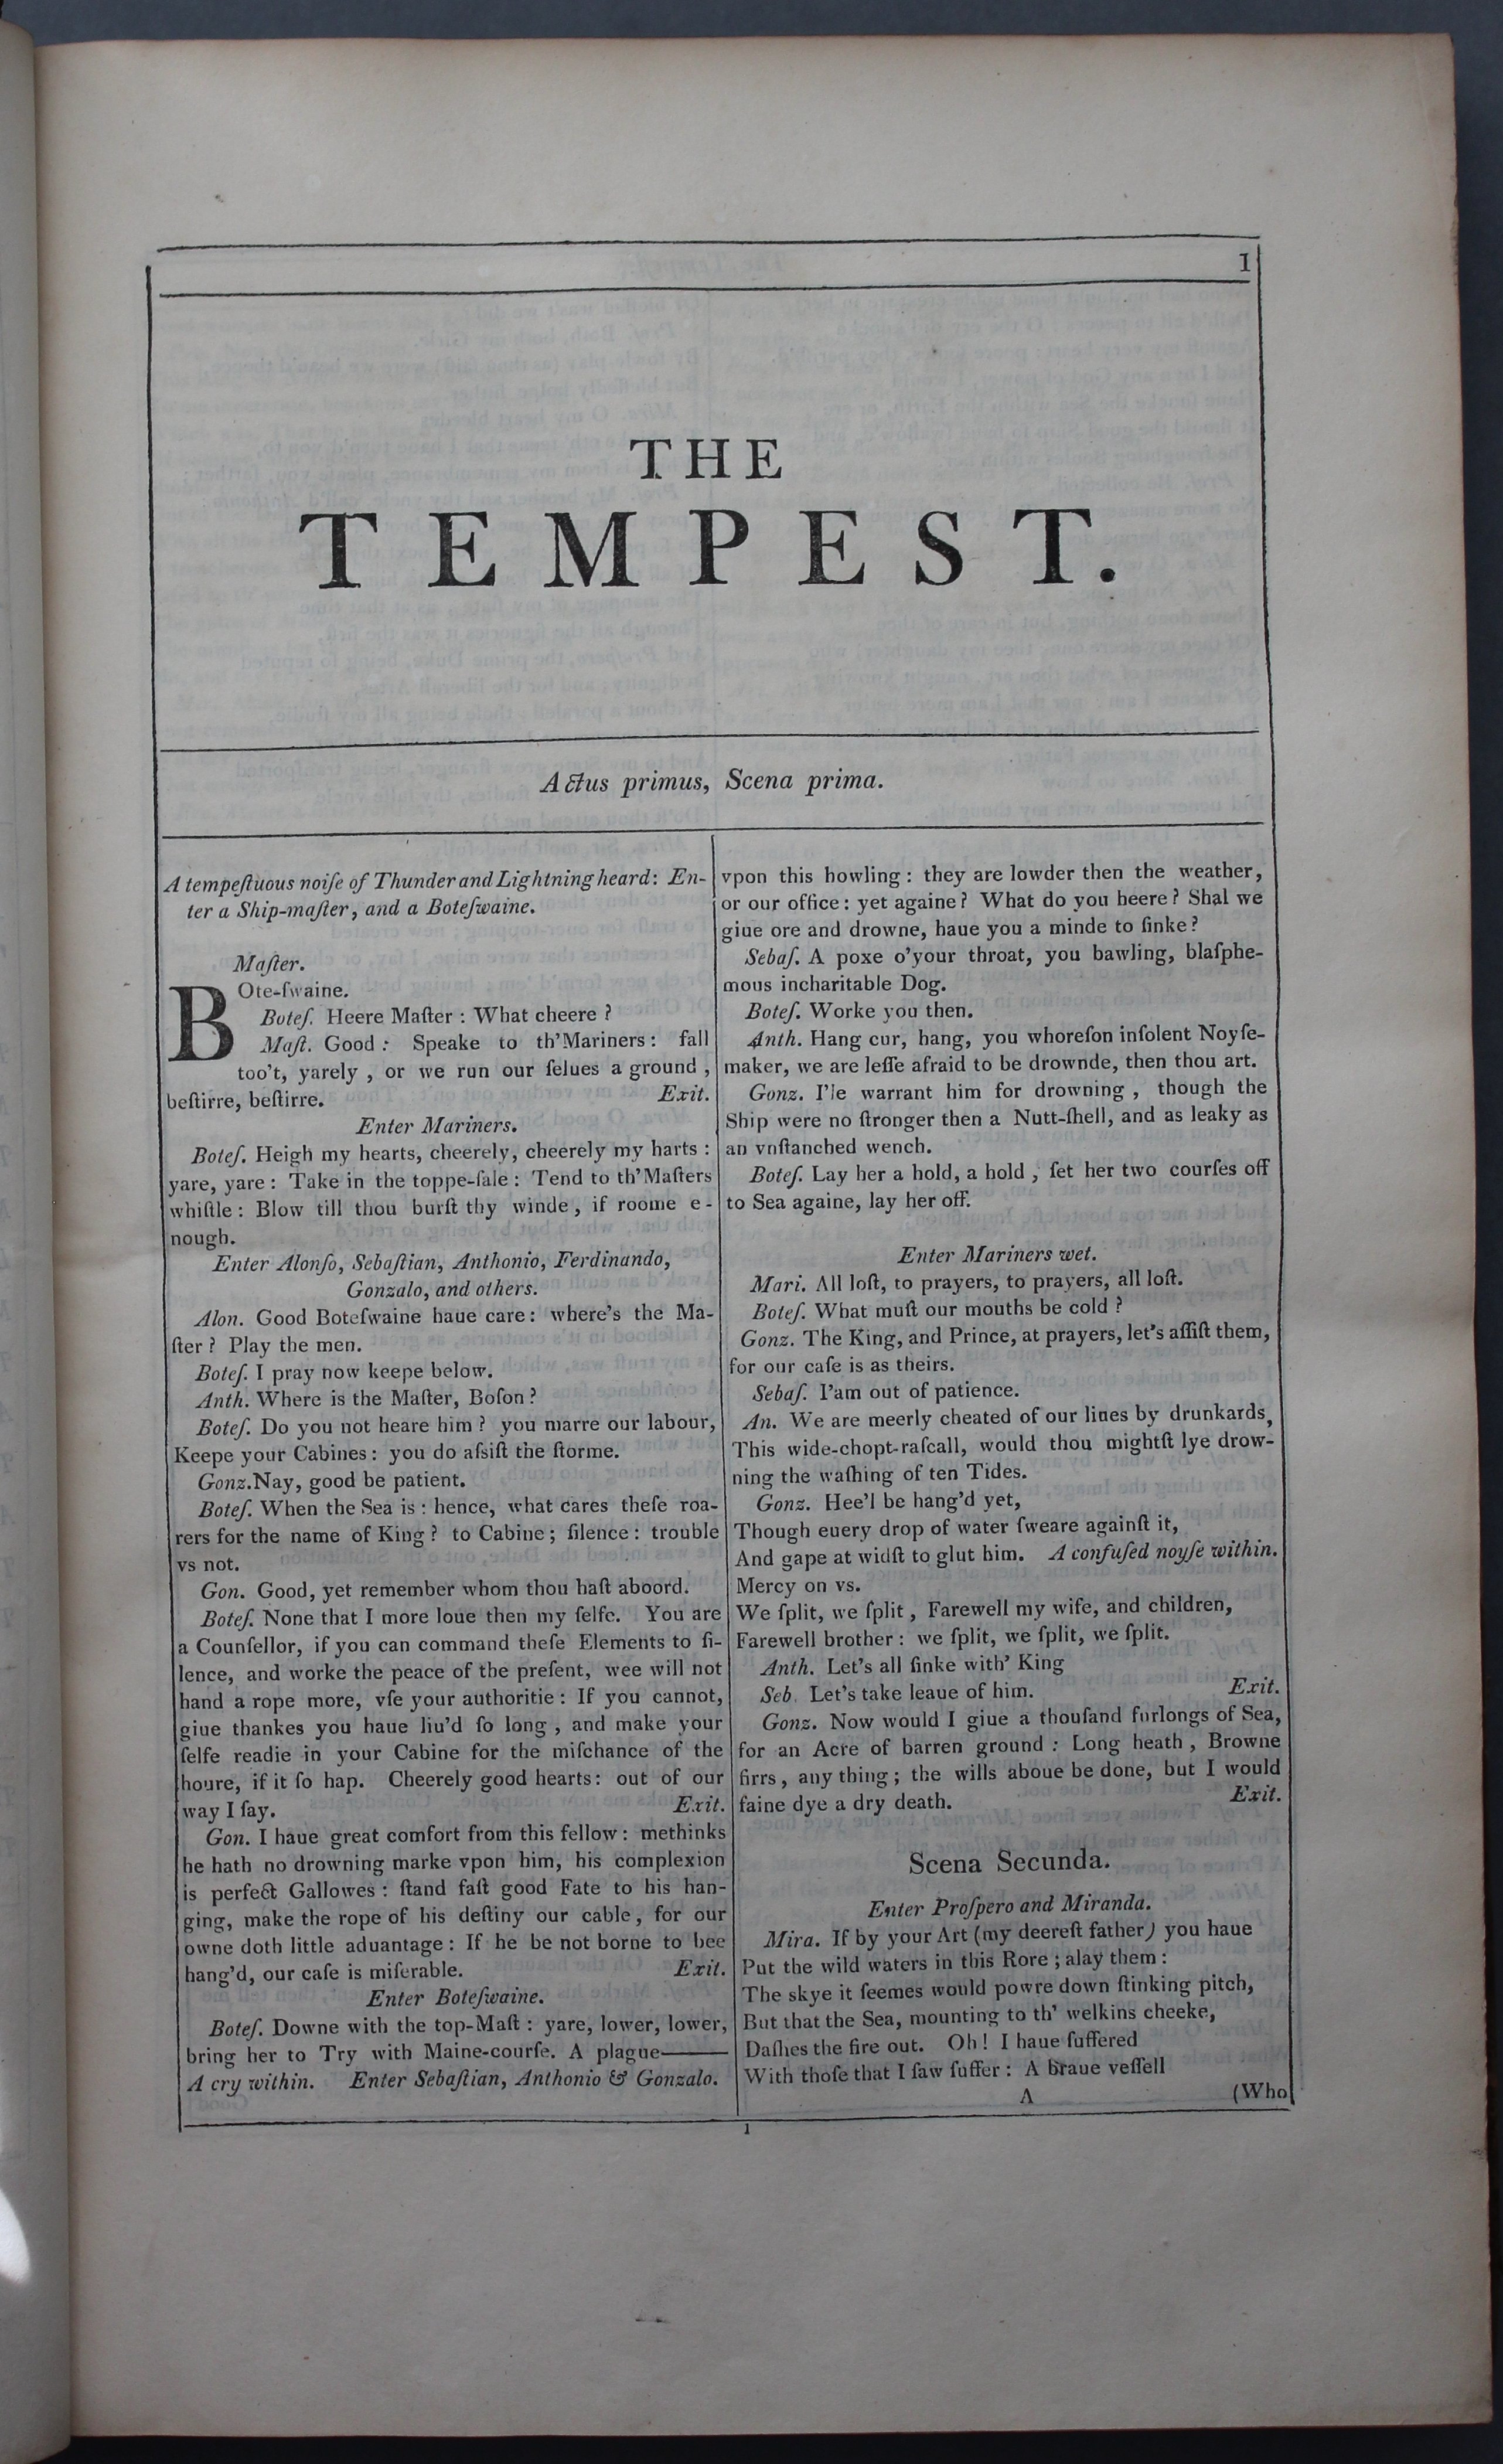 Note the plainer printing style of the opening of 'The Tempest' from the 1807 reprint of Mr. William Shakespeare's Comedies, History, &Tragedies (London, 1807)